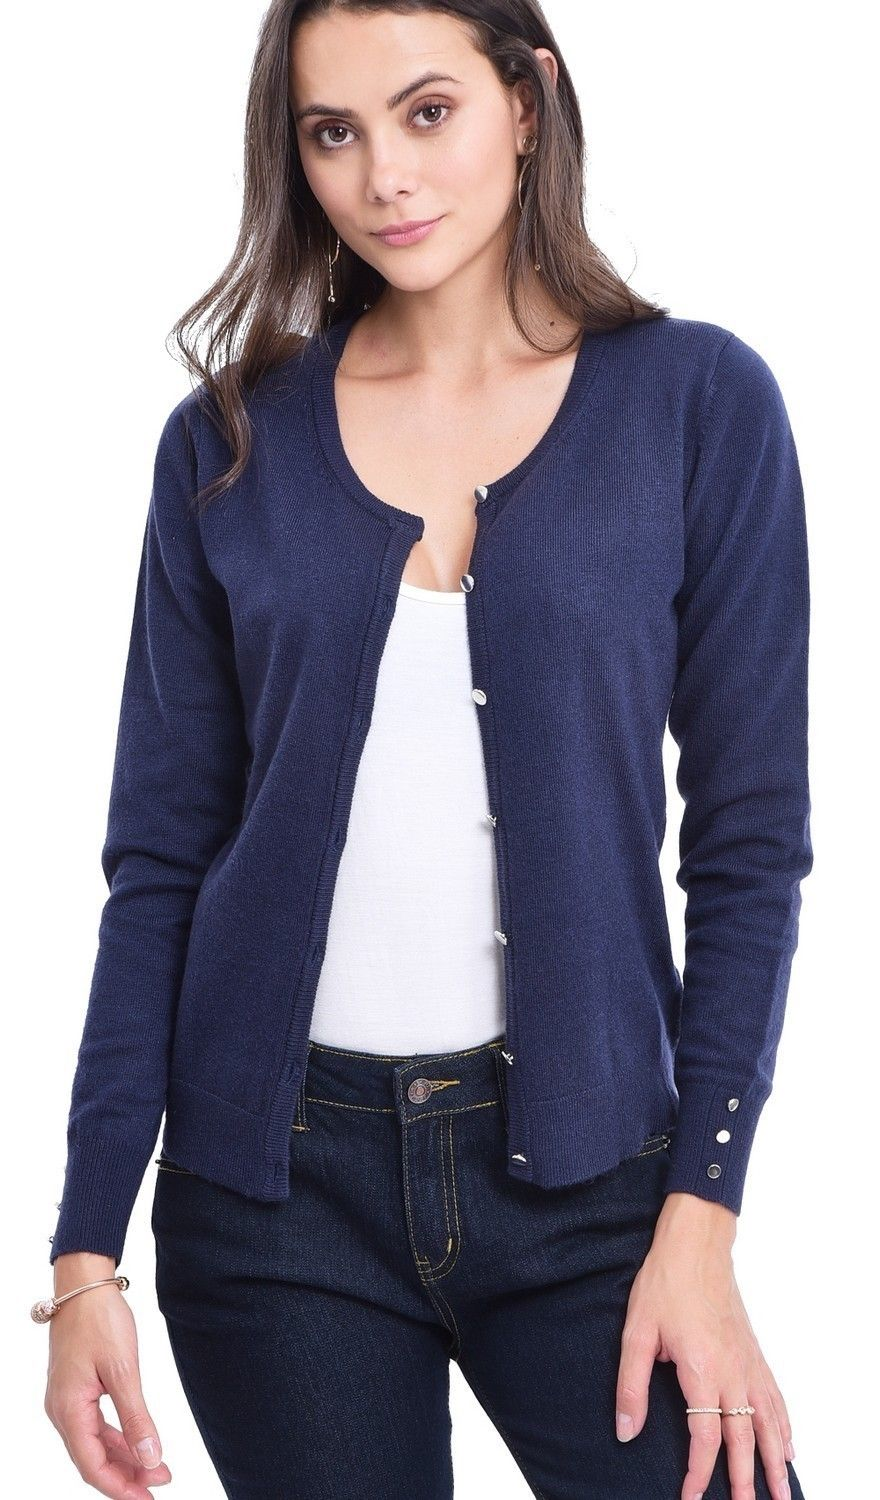 C&JO Round Neck Cardigan with Silver Buttons in Navy